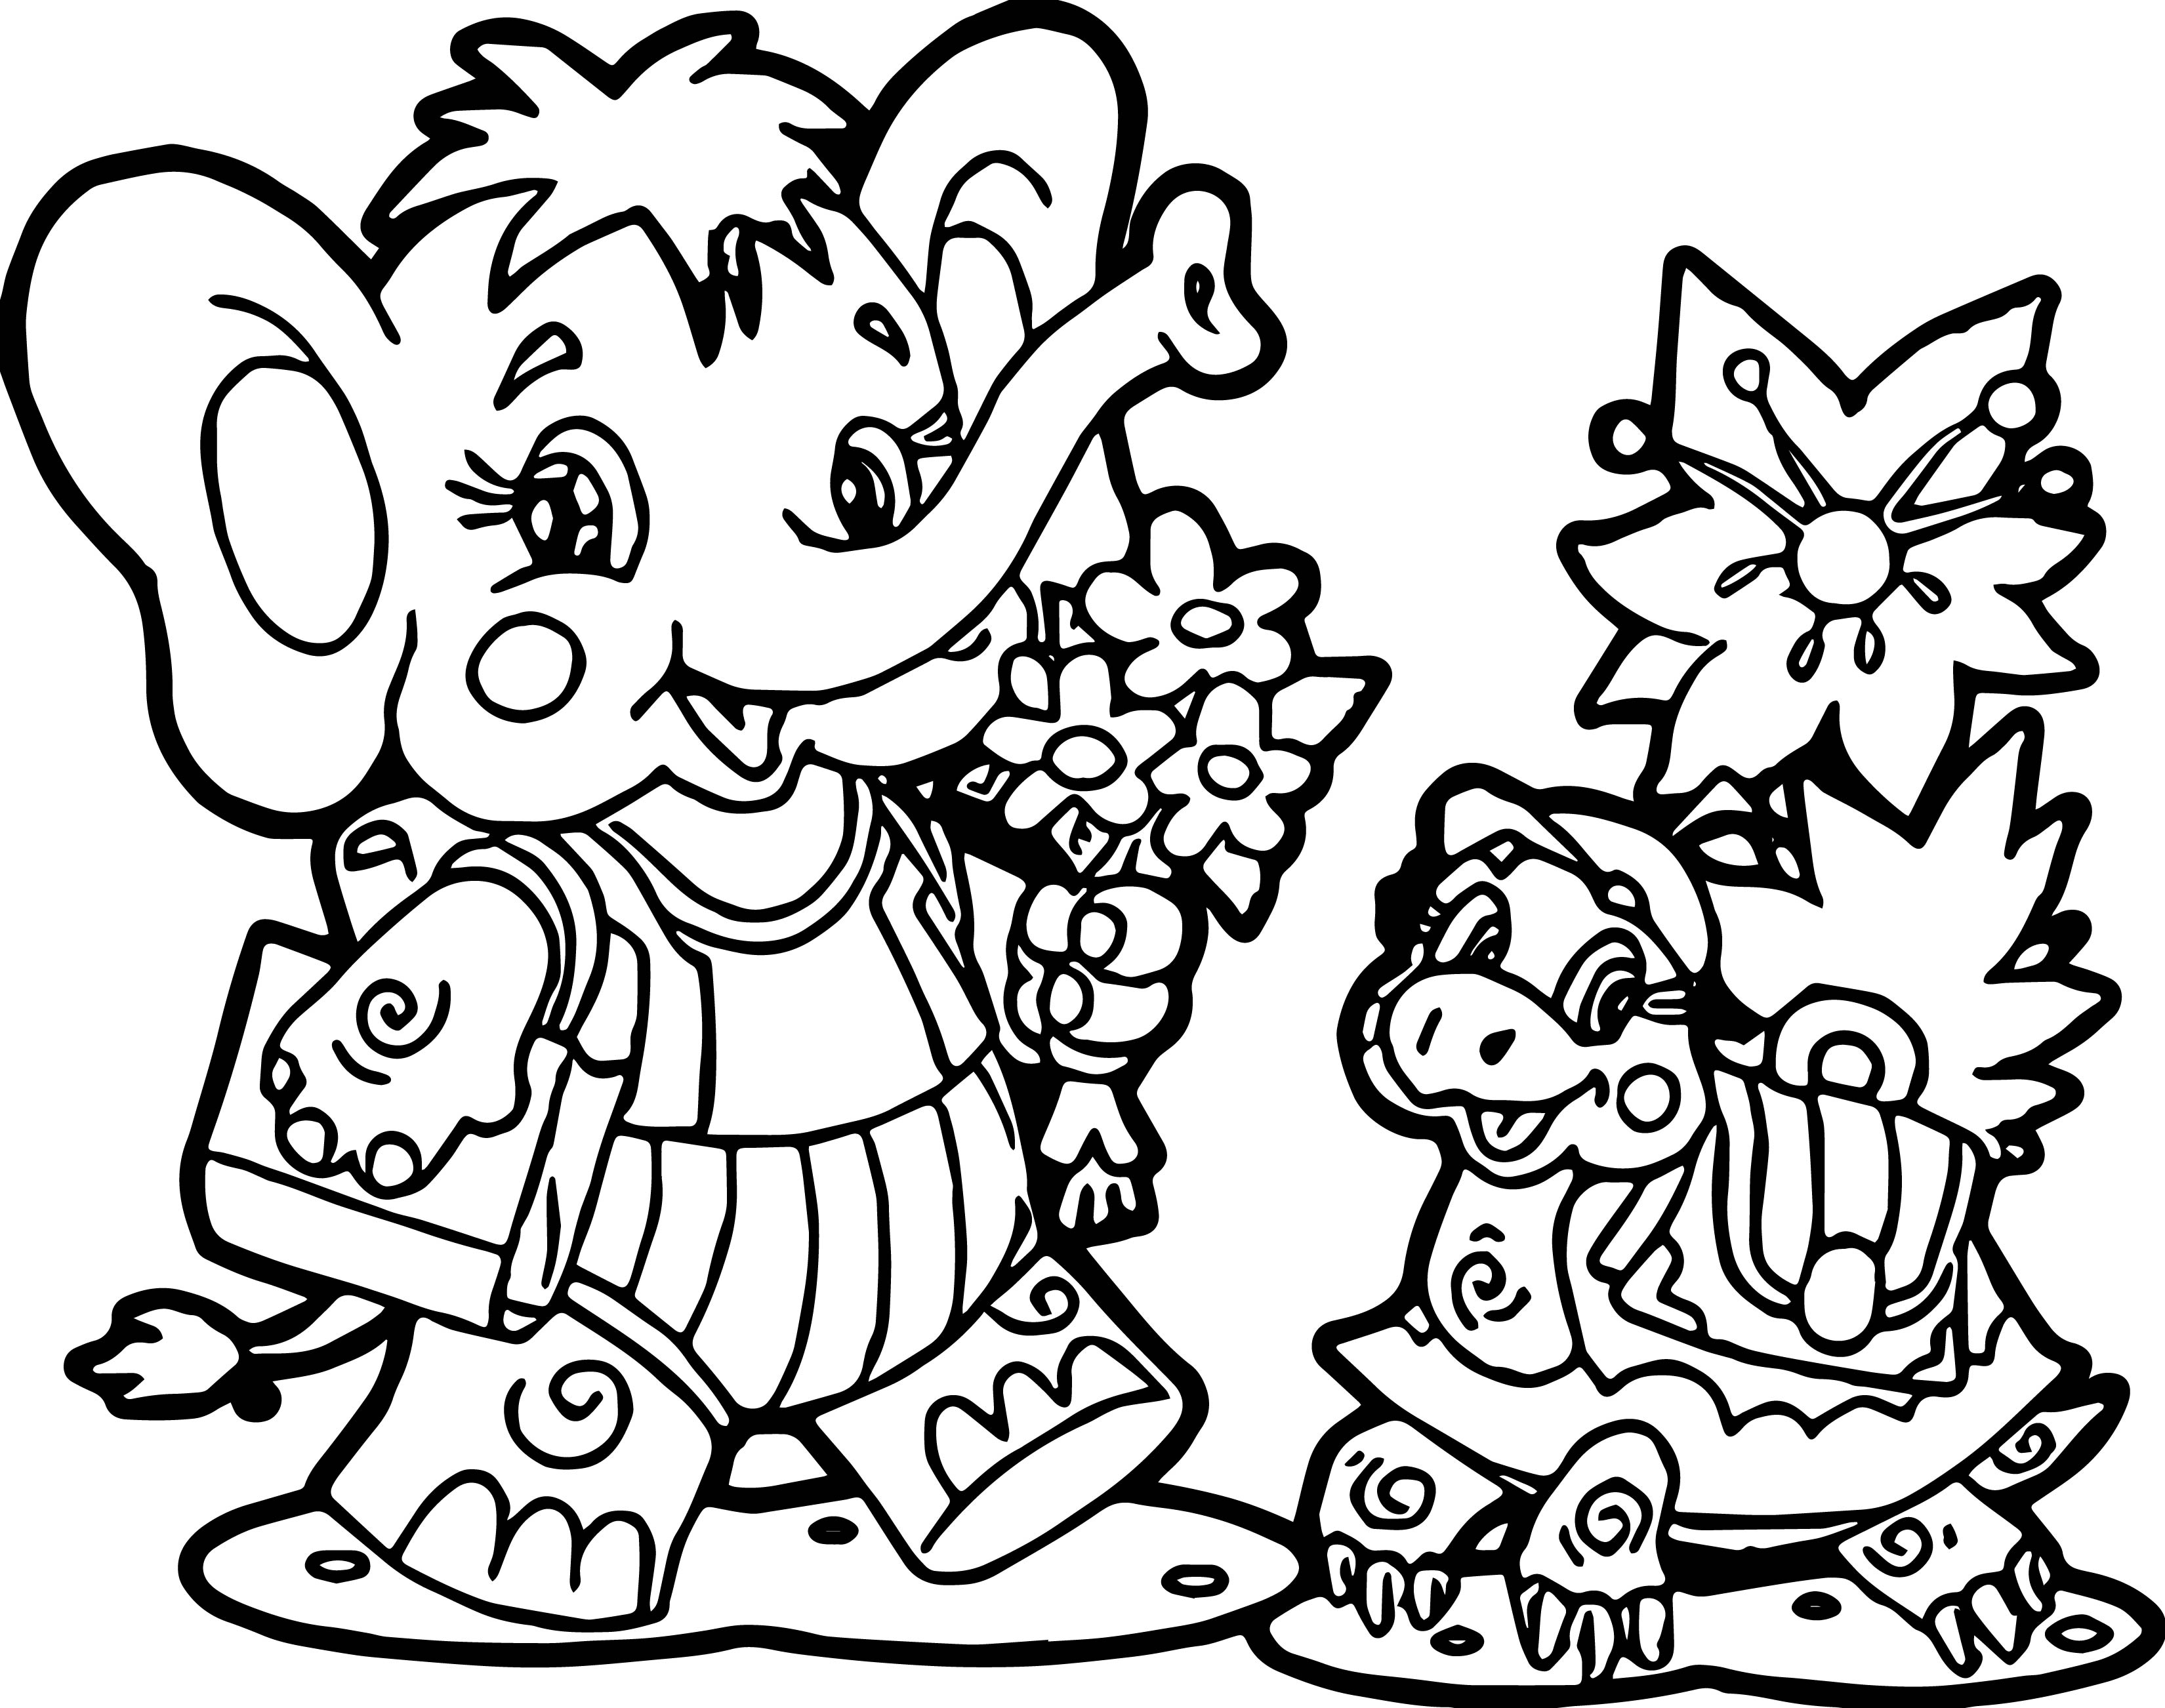 Elephant Turtle Coloring Page